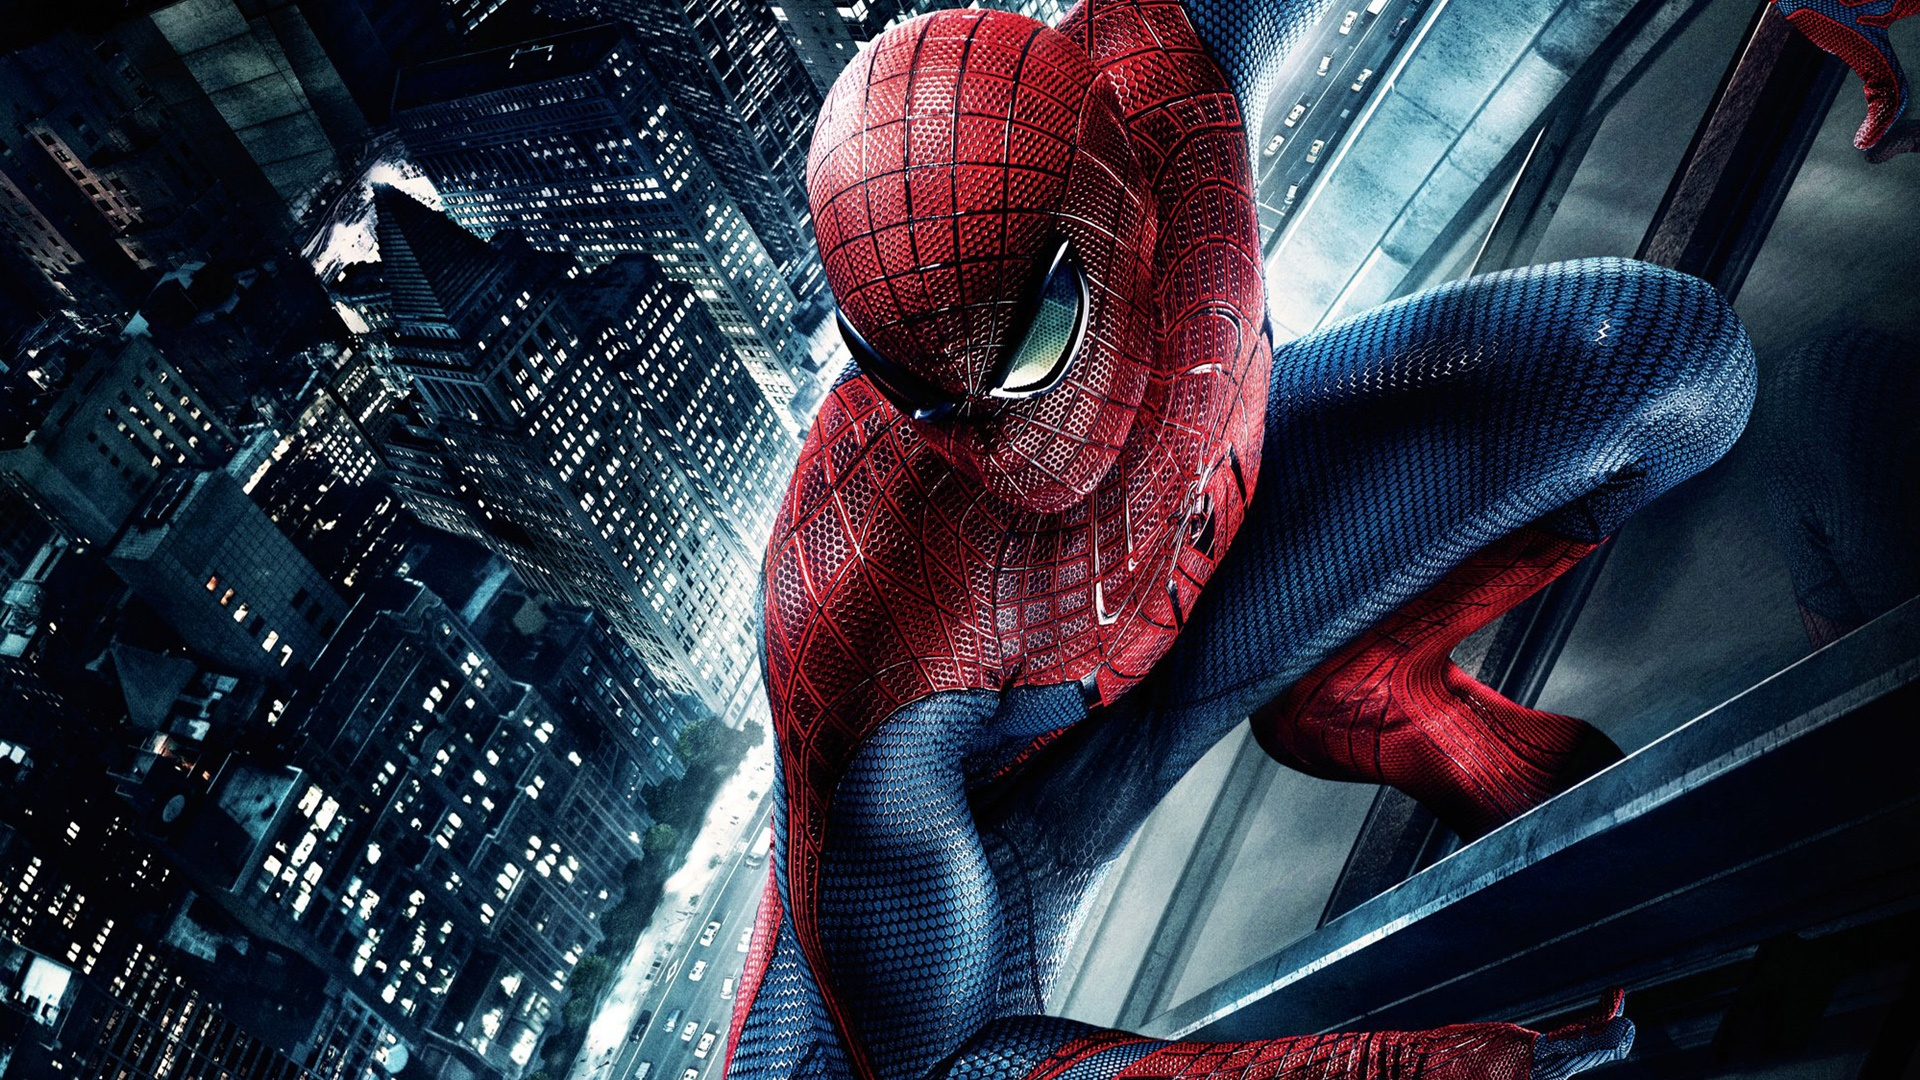 Amazing Spider Man Wallpapers Full HD 1080p HD Desktop Wallpapers 1920x1080